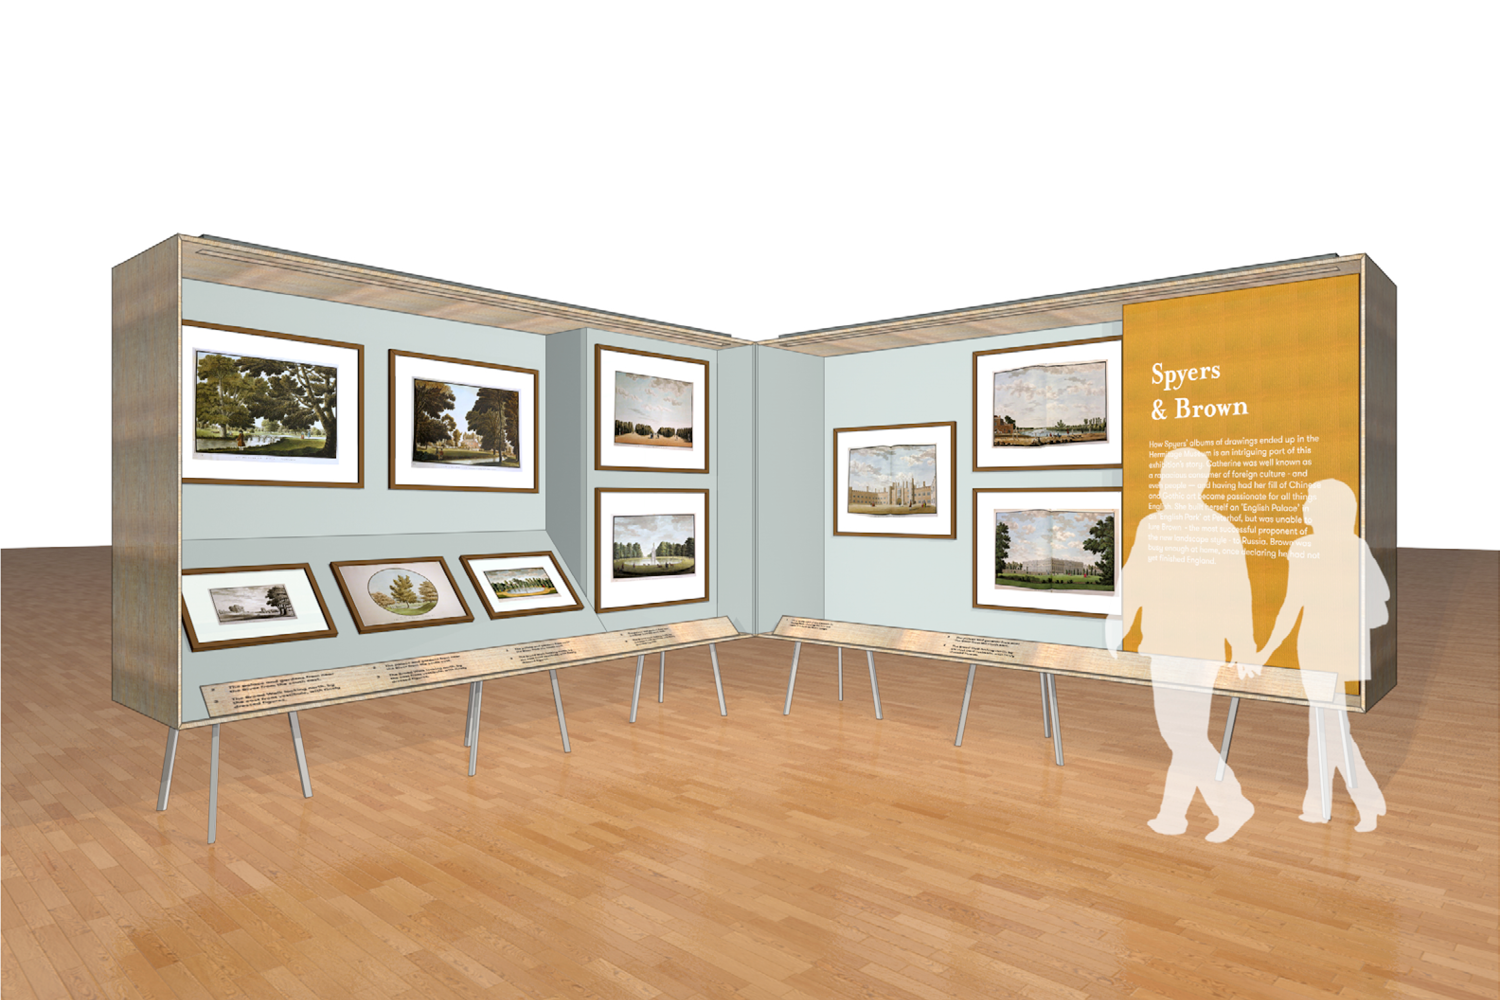 Capability Brown Exhibition by Mowat and Company